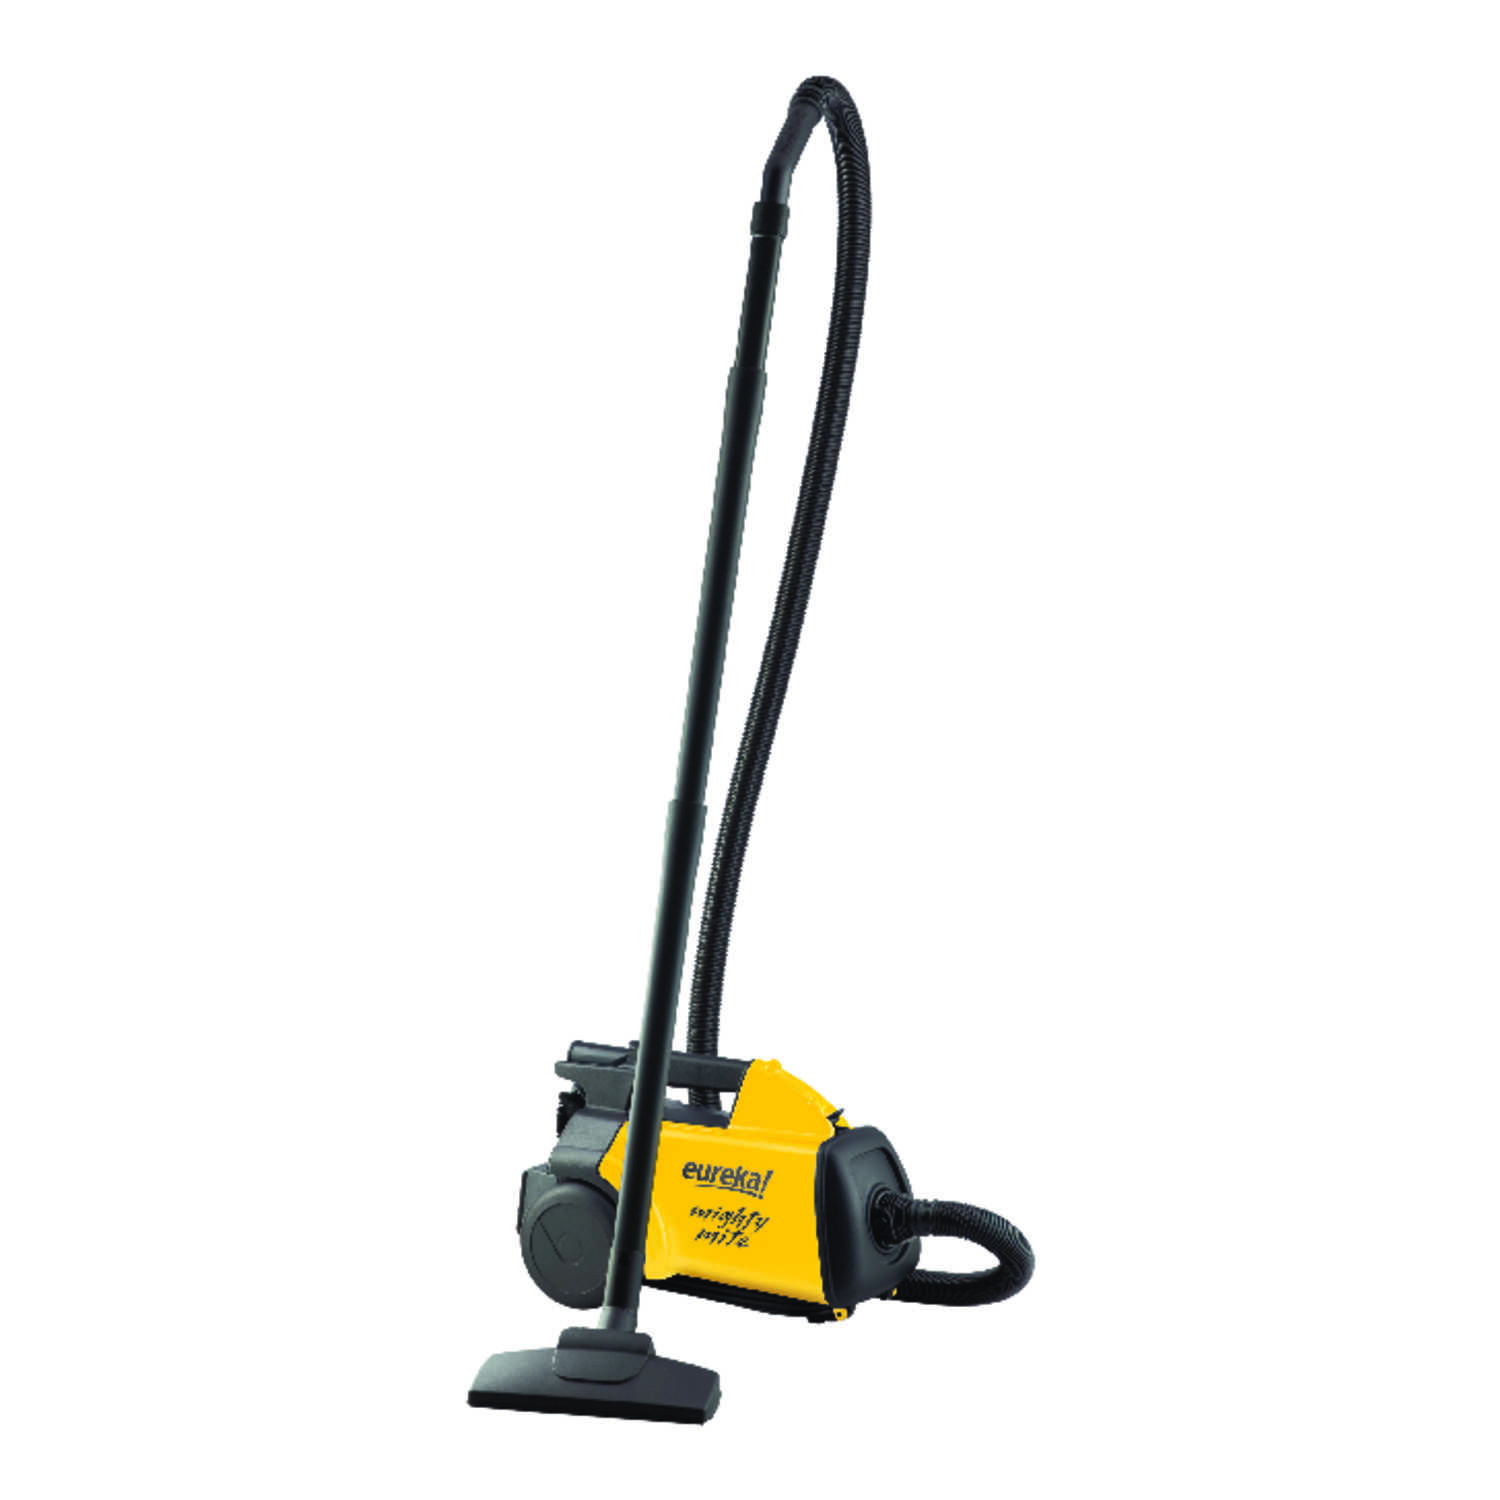 Eureka  Mighty Mite  Bagged  Canister Vacuum  12 amps HEPA  Yellow